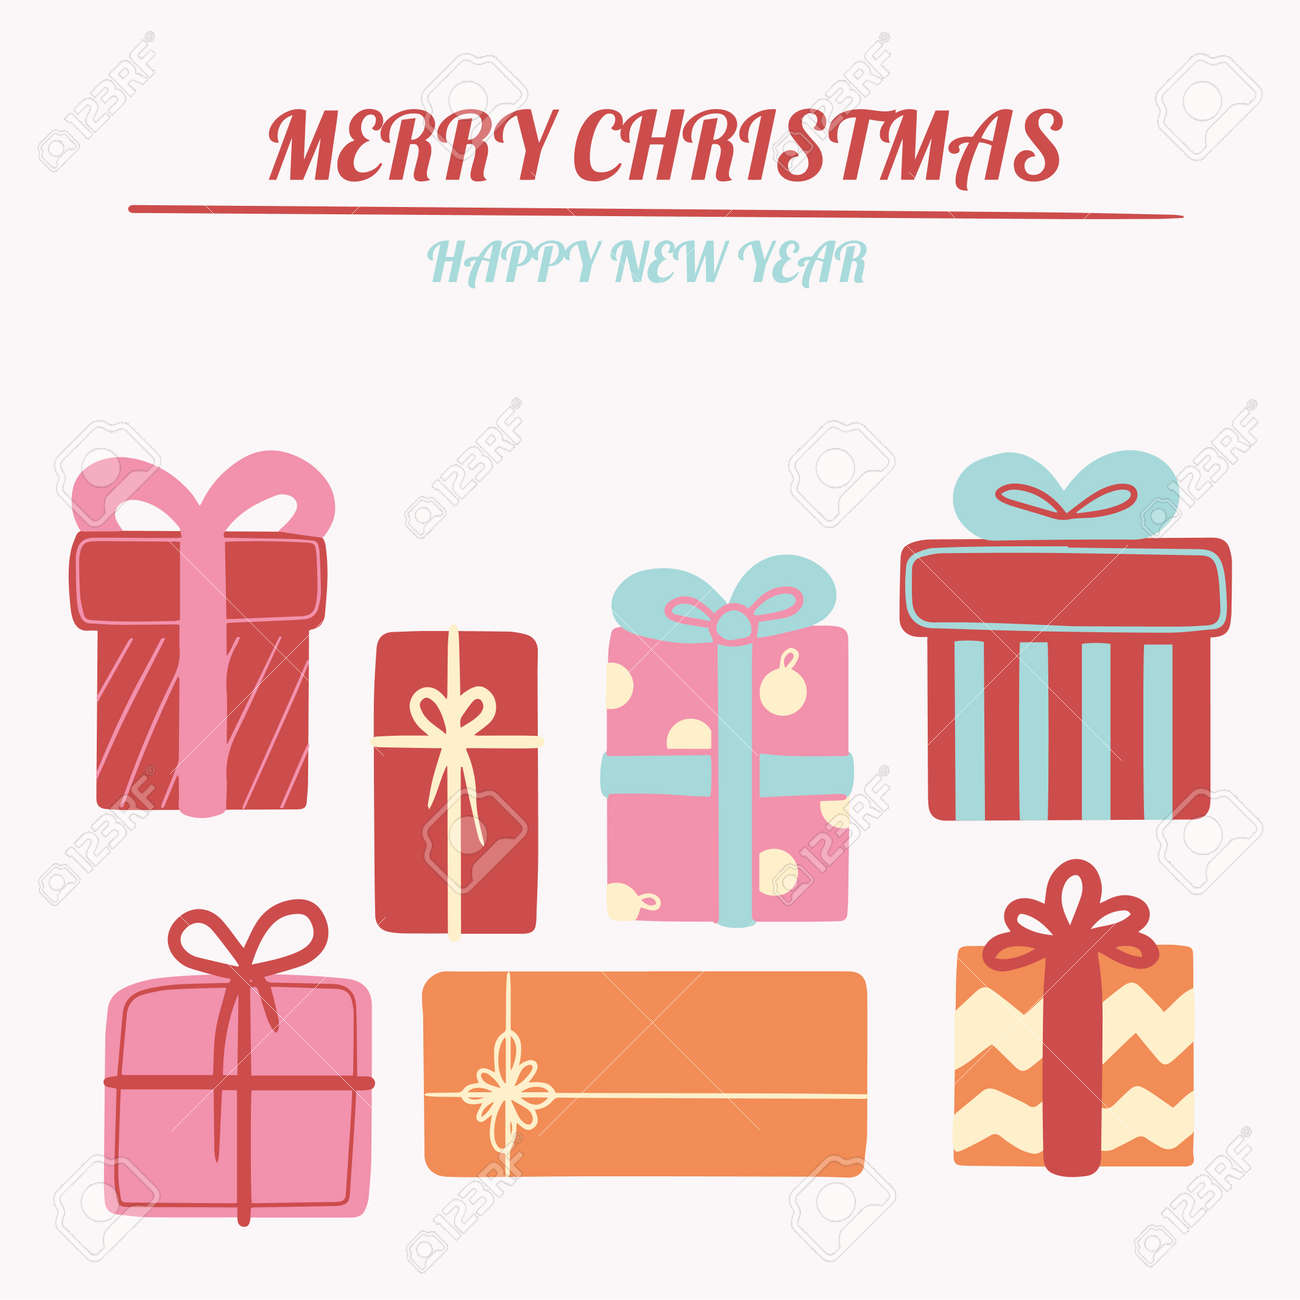 Christmas illustration, New Year card with a set of cute gifts. Vector banner for social networks, postcards, marketing materials, textures, social networks, mobile applications. - 159029334